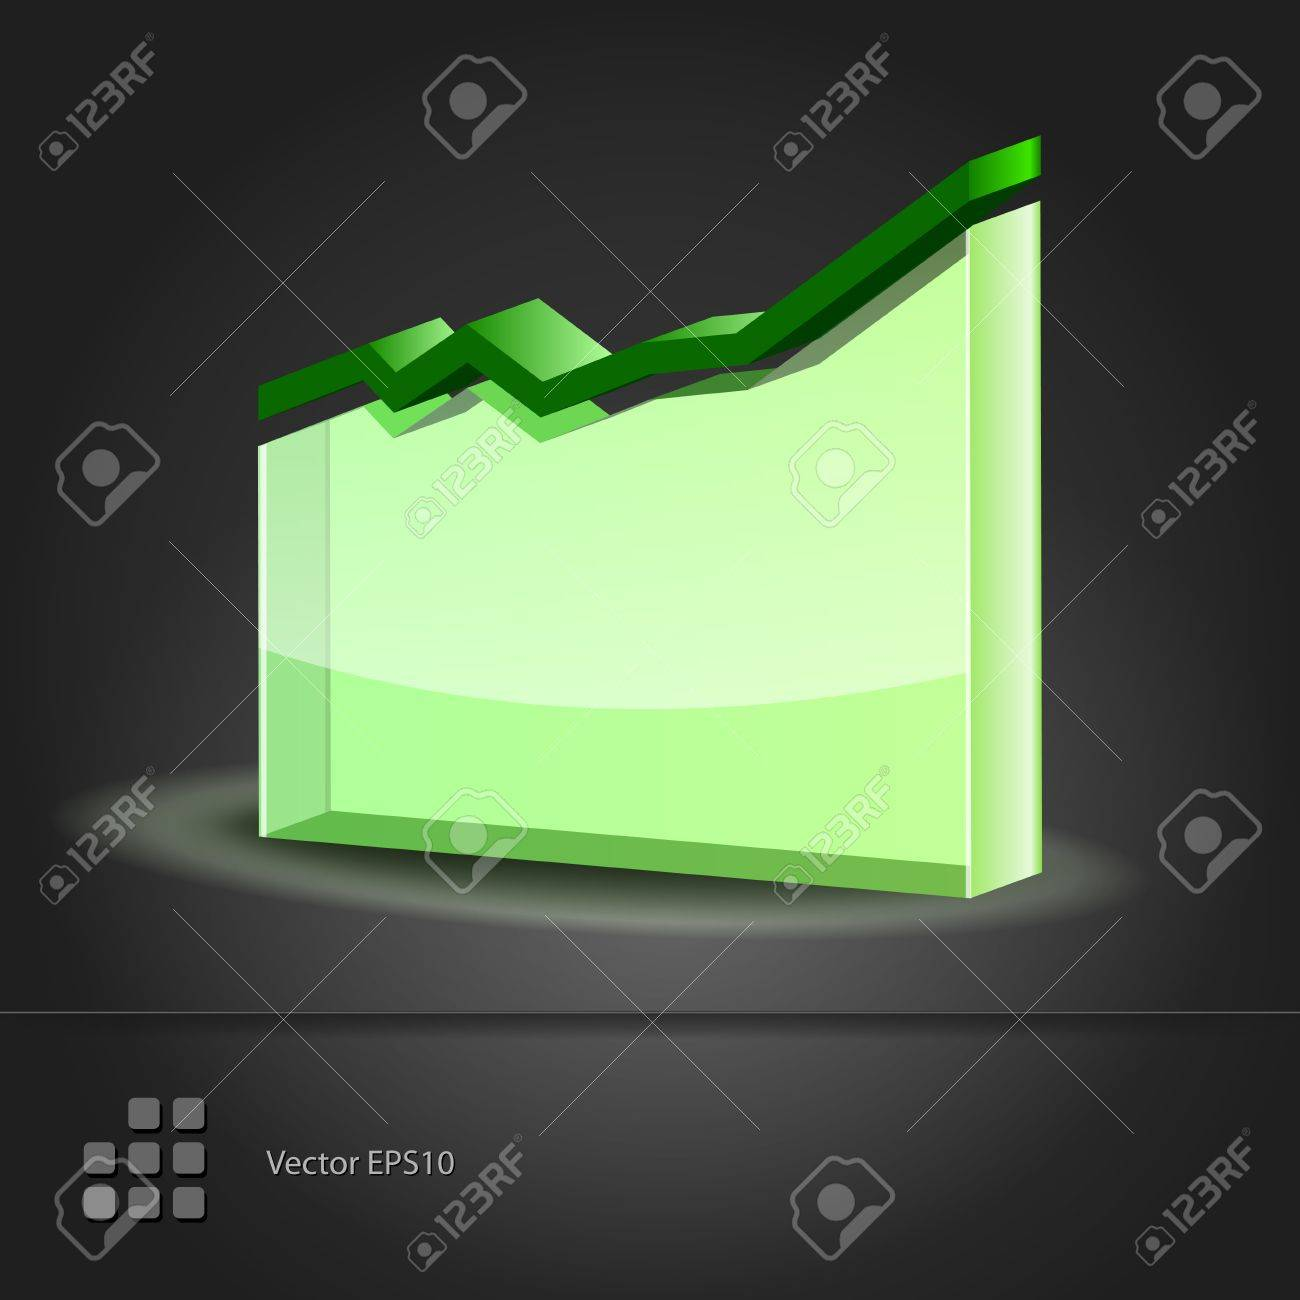 Crystal glass diagram  Graph Line Chart icon  Vector illustration Stock Vector - 15395309